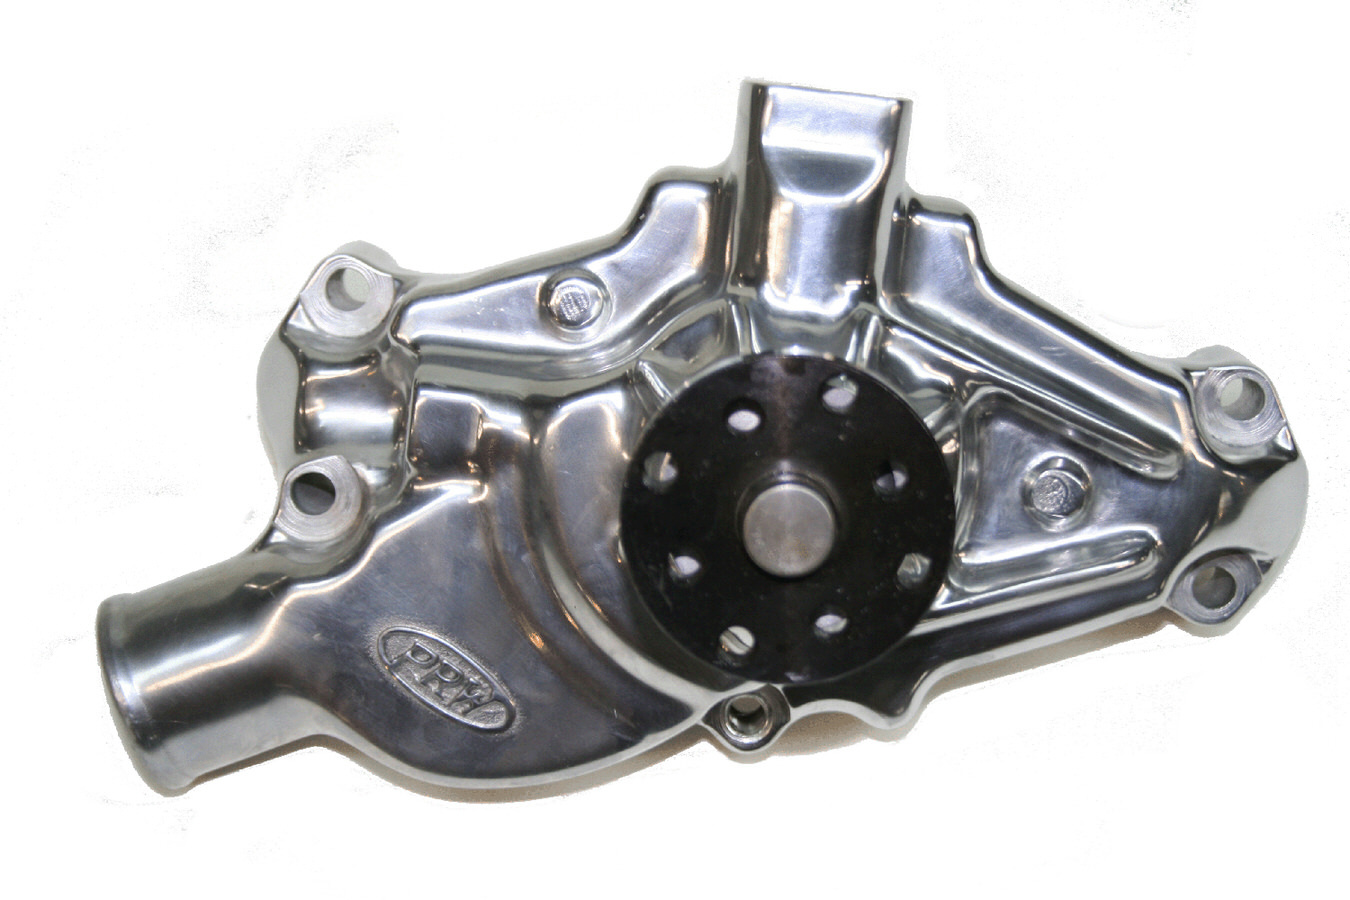 PRW Industries 1435013 Water Pump, Mechanical, High Performance, 3/4 in Pilot, Short Design, Aluminum, Polished, Small Block Chevy, Each